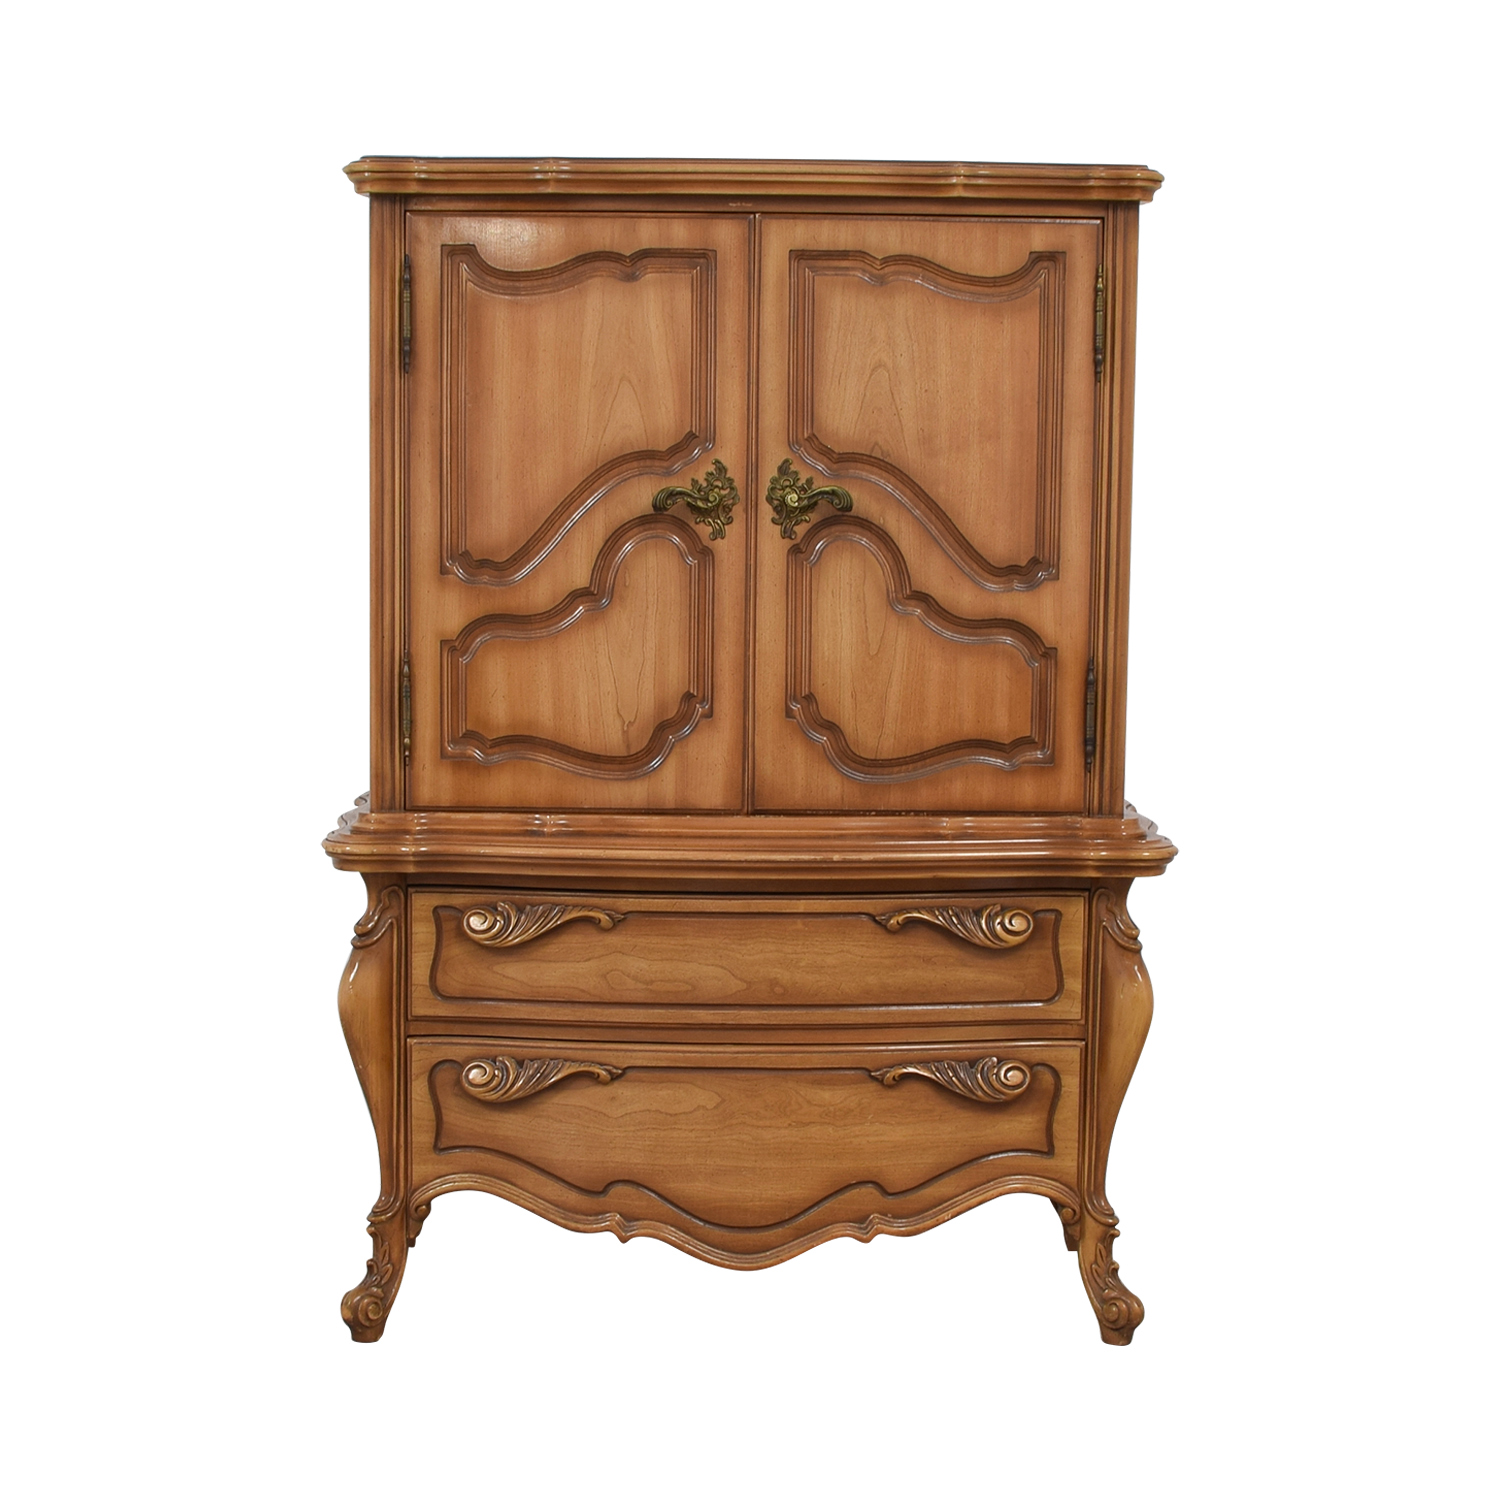 Dovetailed Carved Wood Chest of Drawers Armoire nj